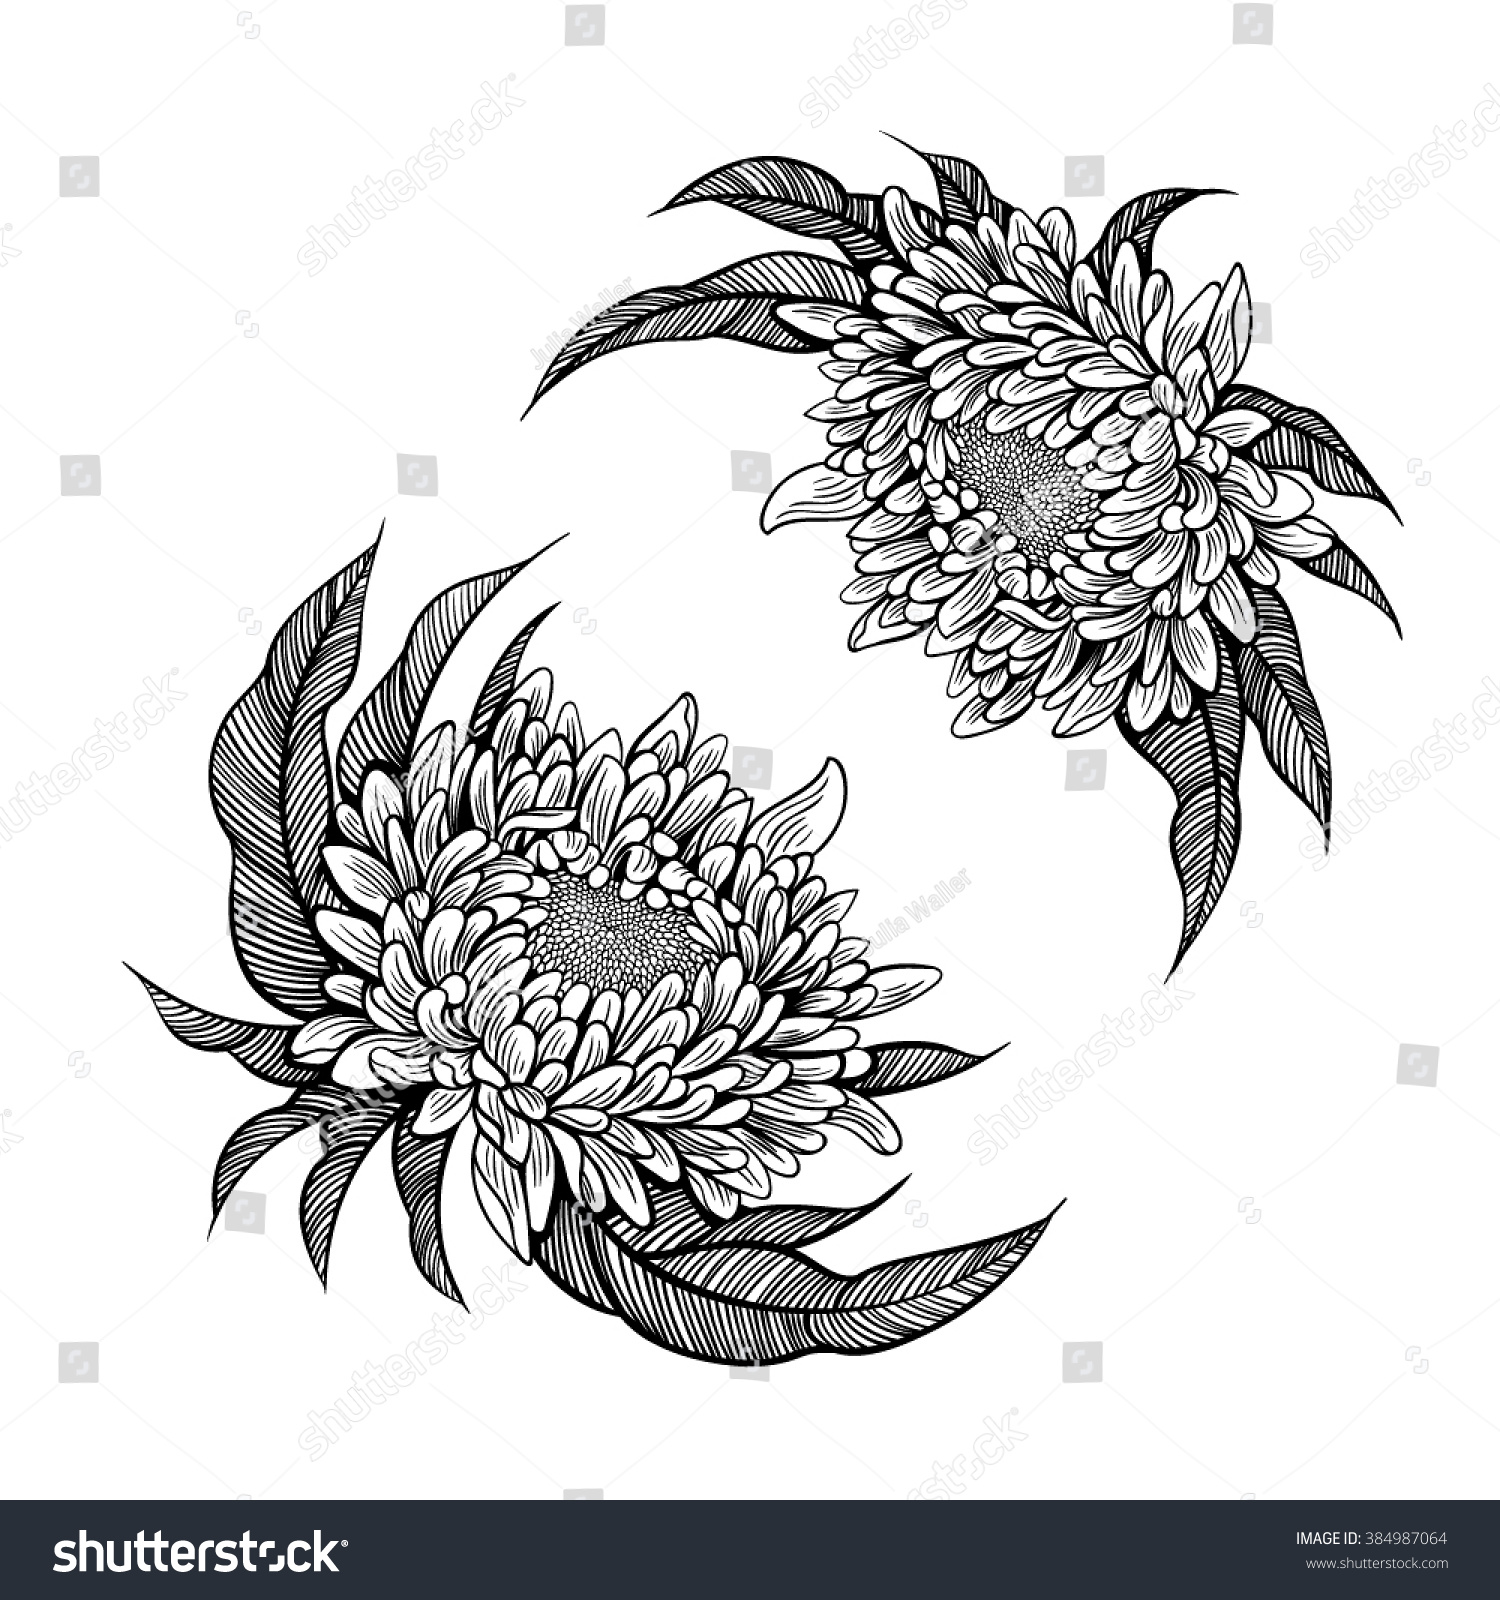 Vector Black White Peony Flower Illustration Stock Vector Royalty